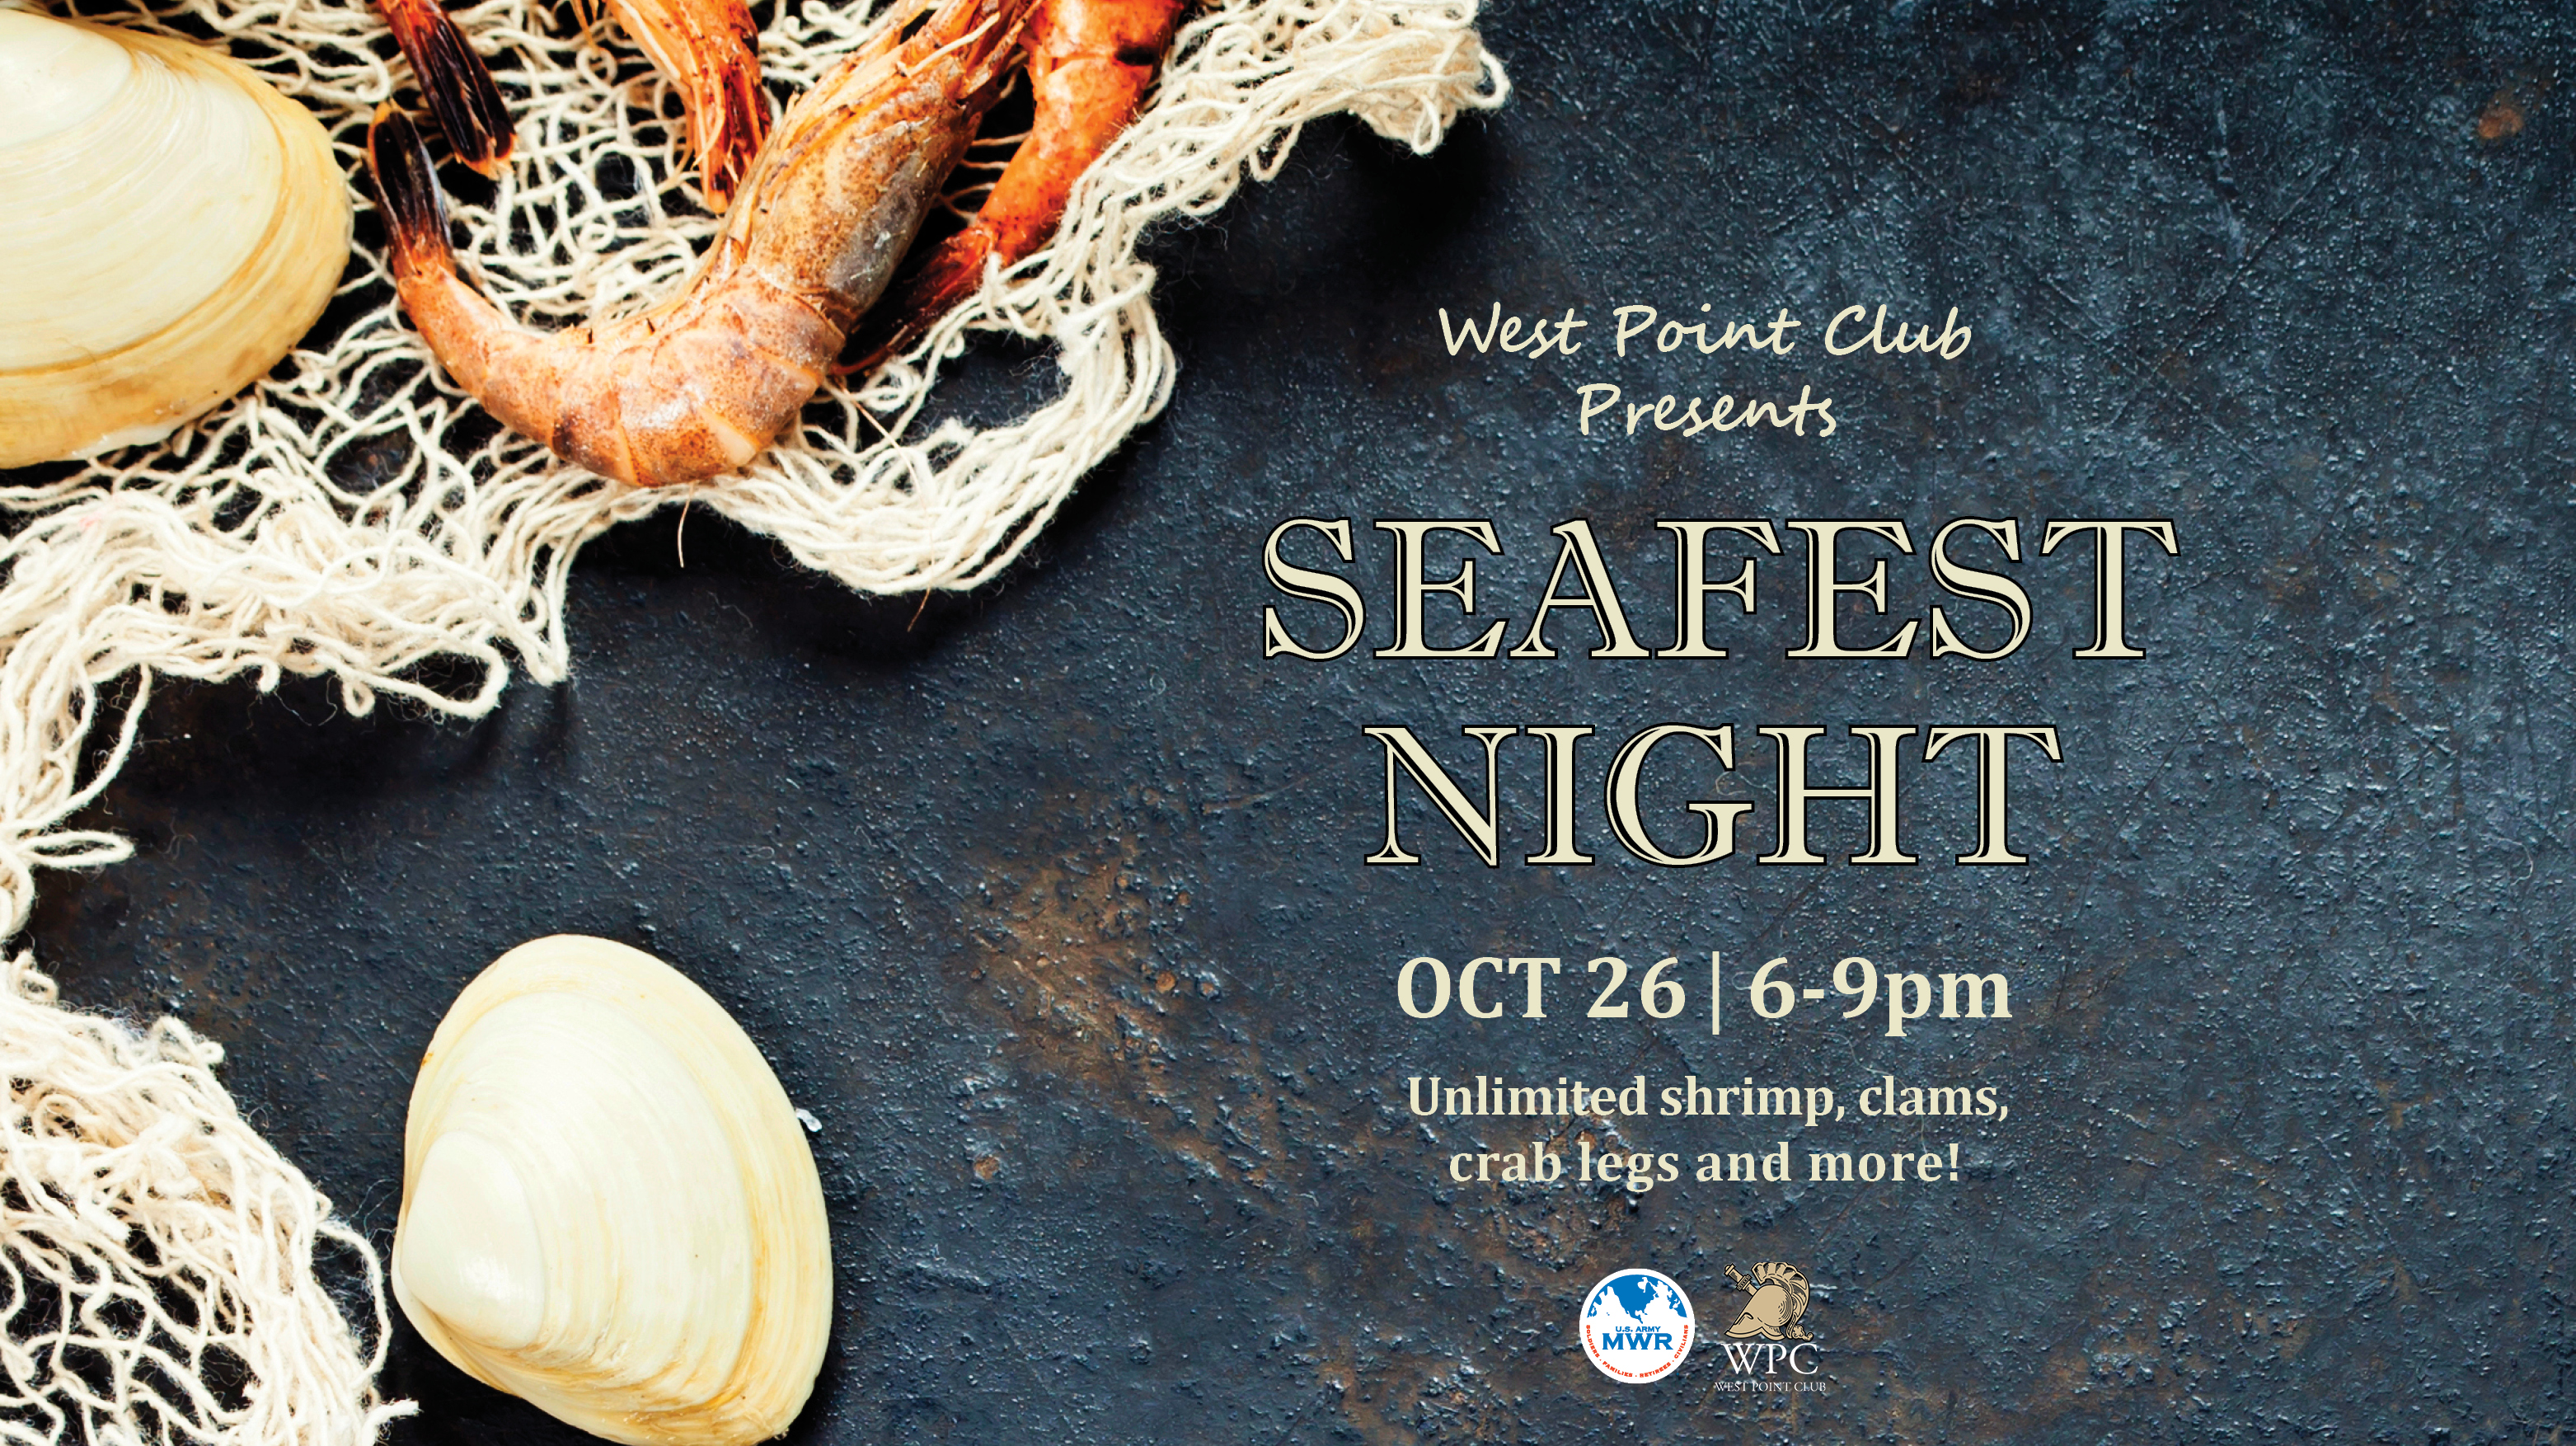 Sea Fest Night